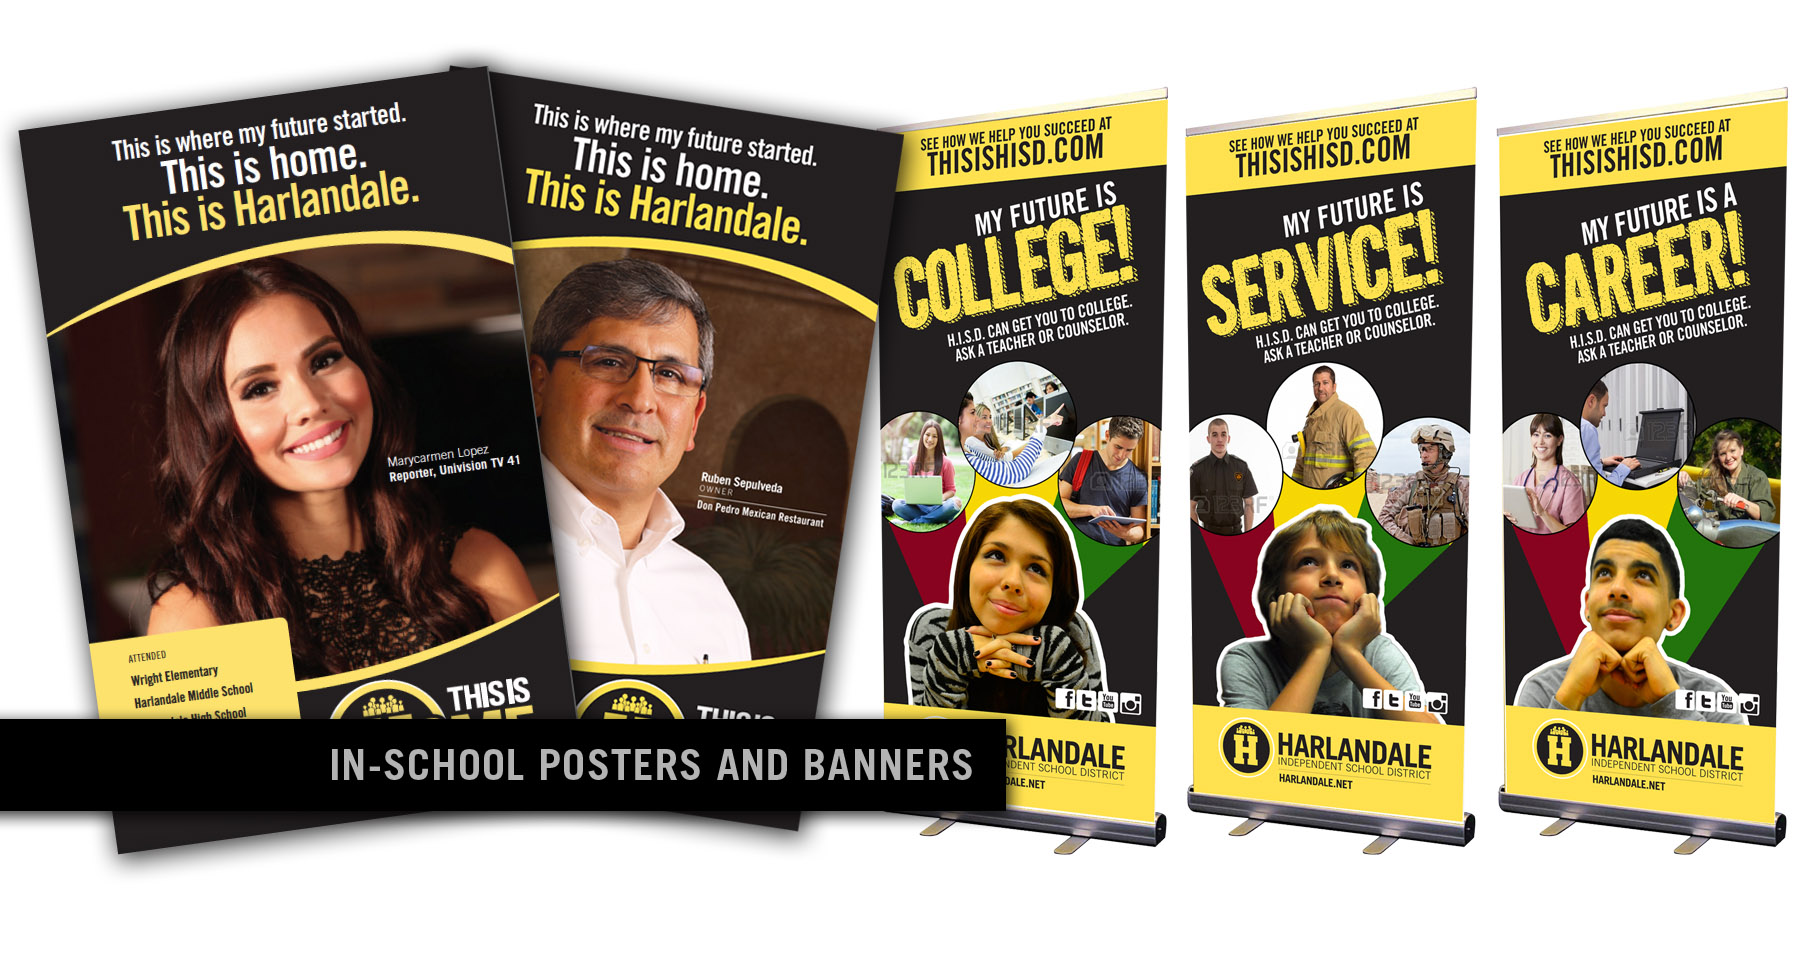 HISD_Banners_Posters